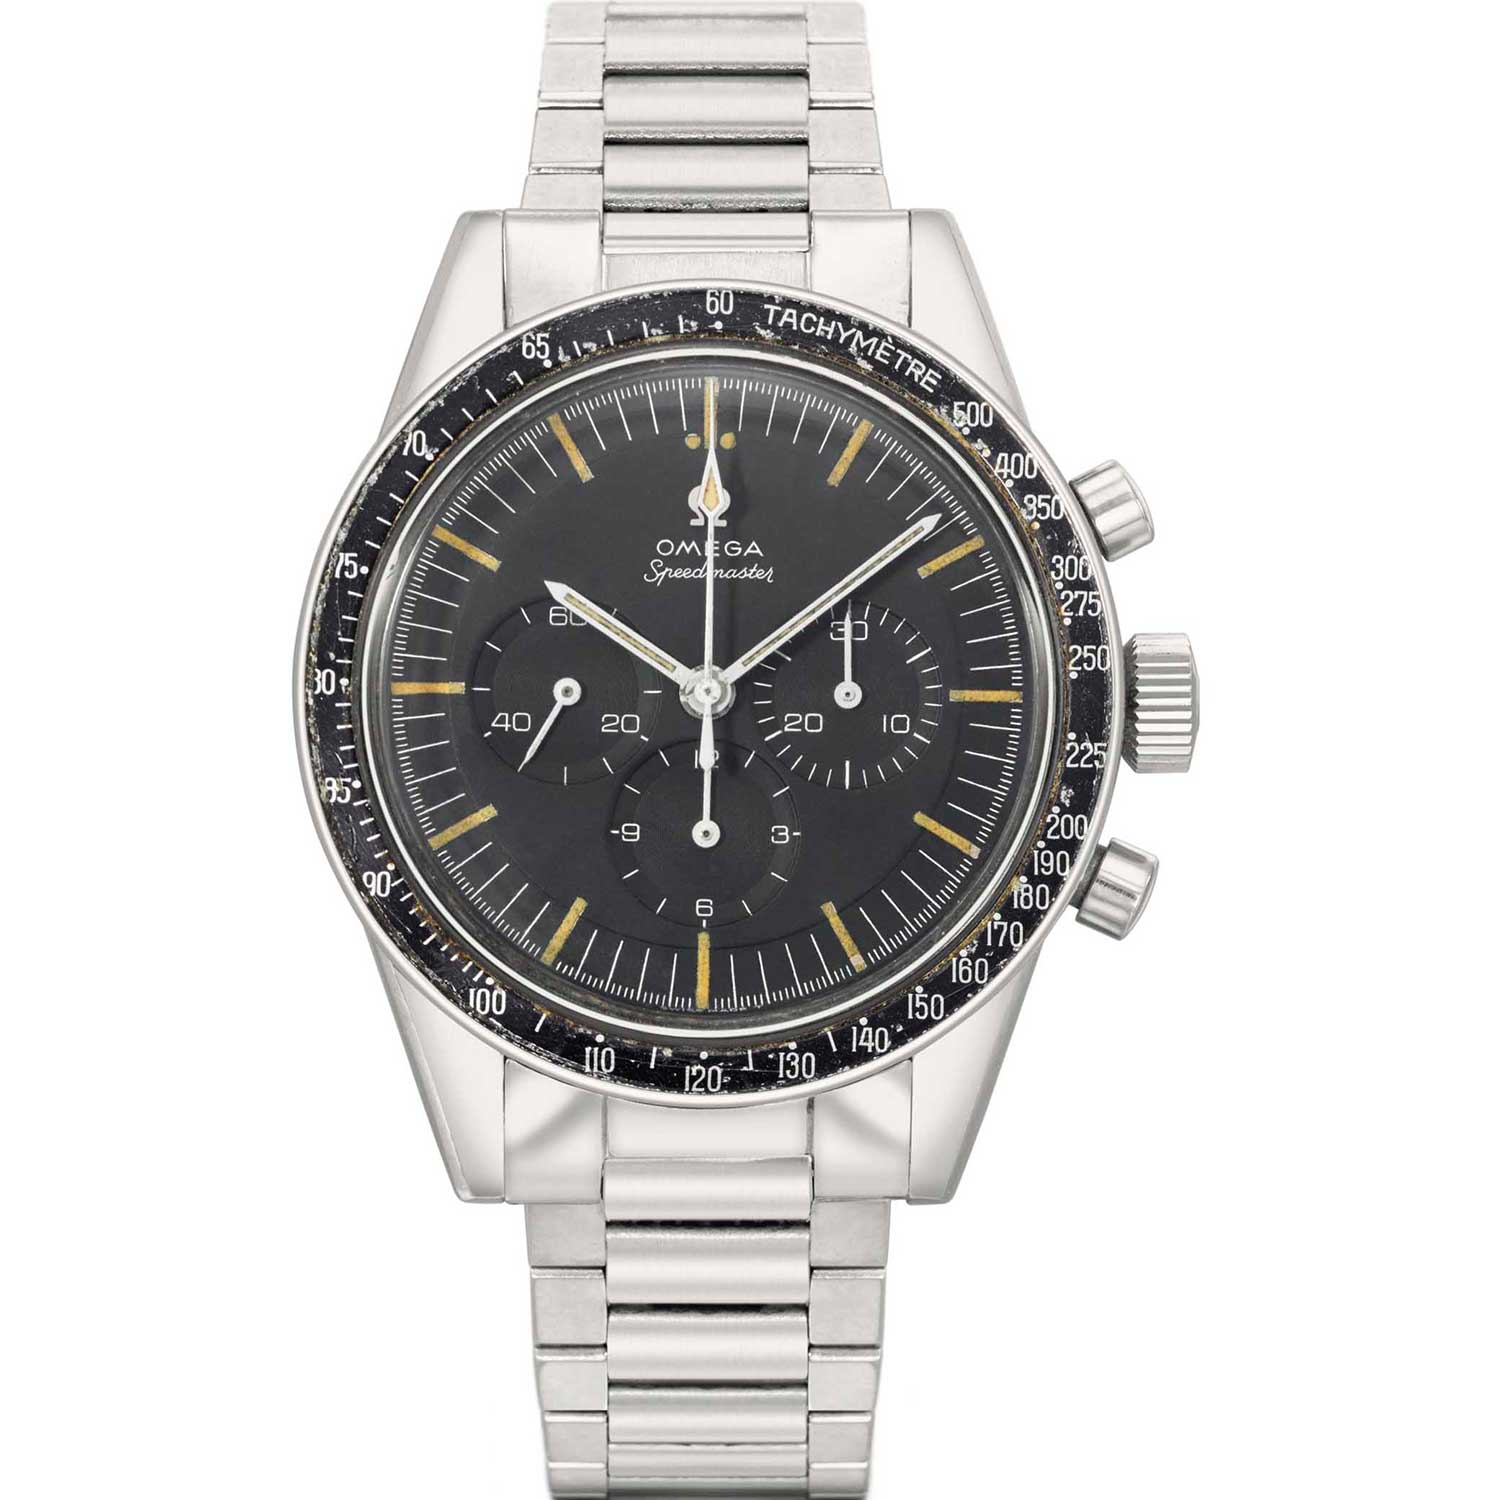 The third generation of the Speedmaster, the 1963 ST 105.003 (Image: Christies.com)